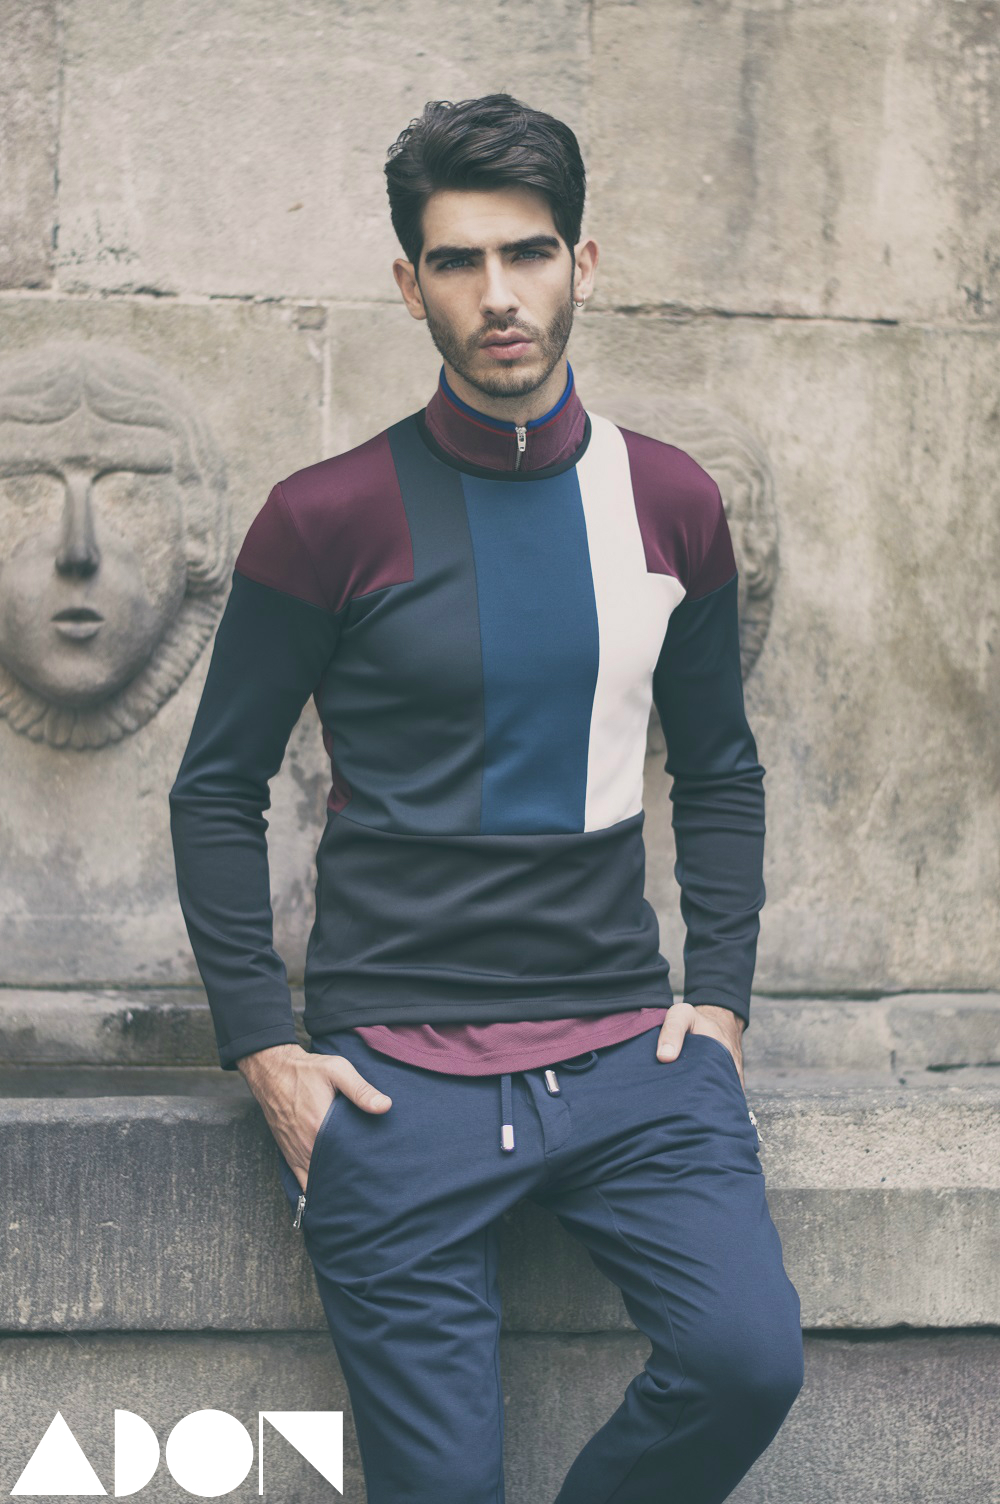 Polo: Fred Perry, Lycra shirt: Miquel Suay, Trousers: Guess by Marciano